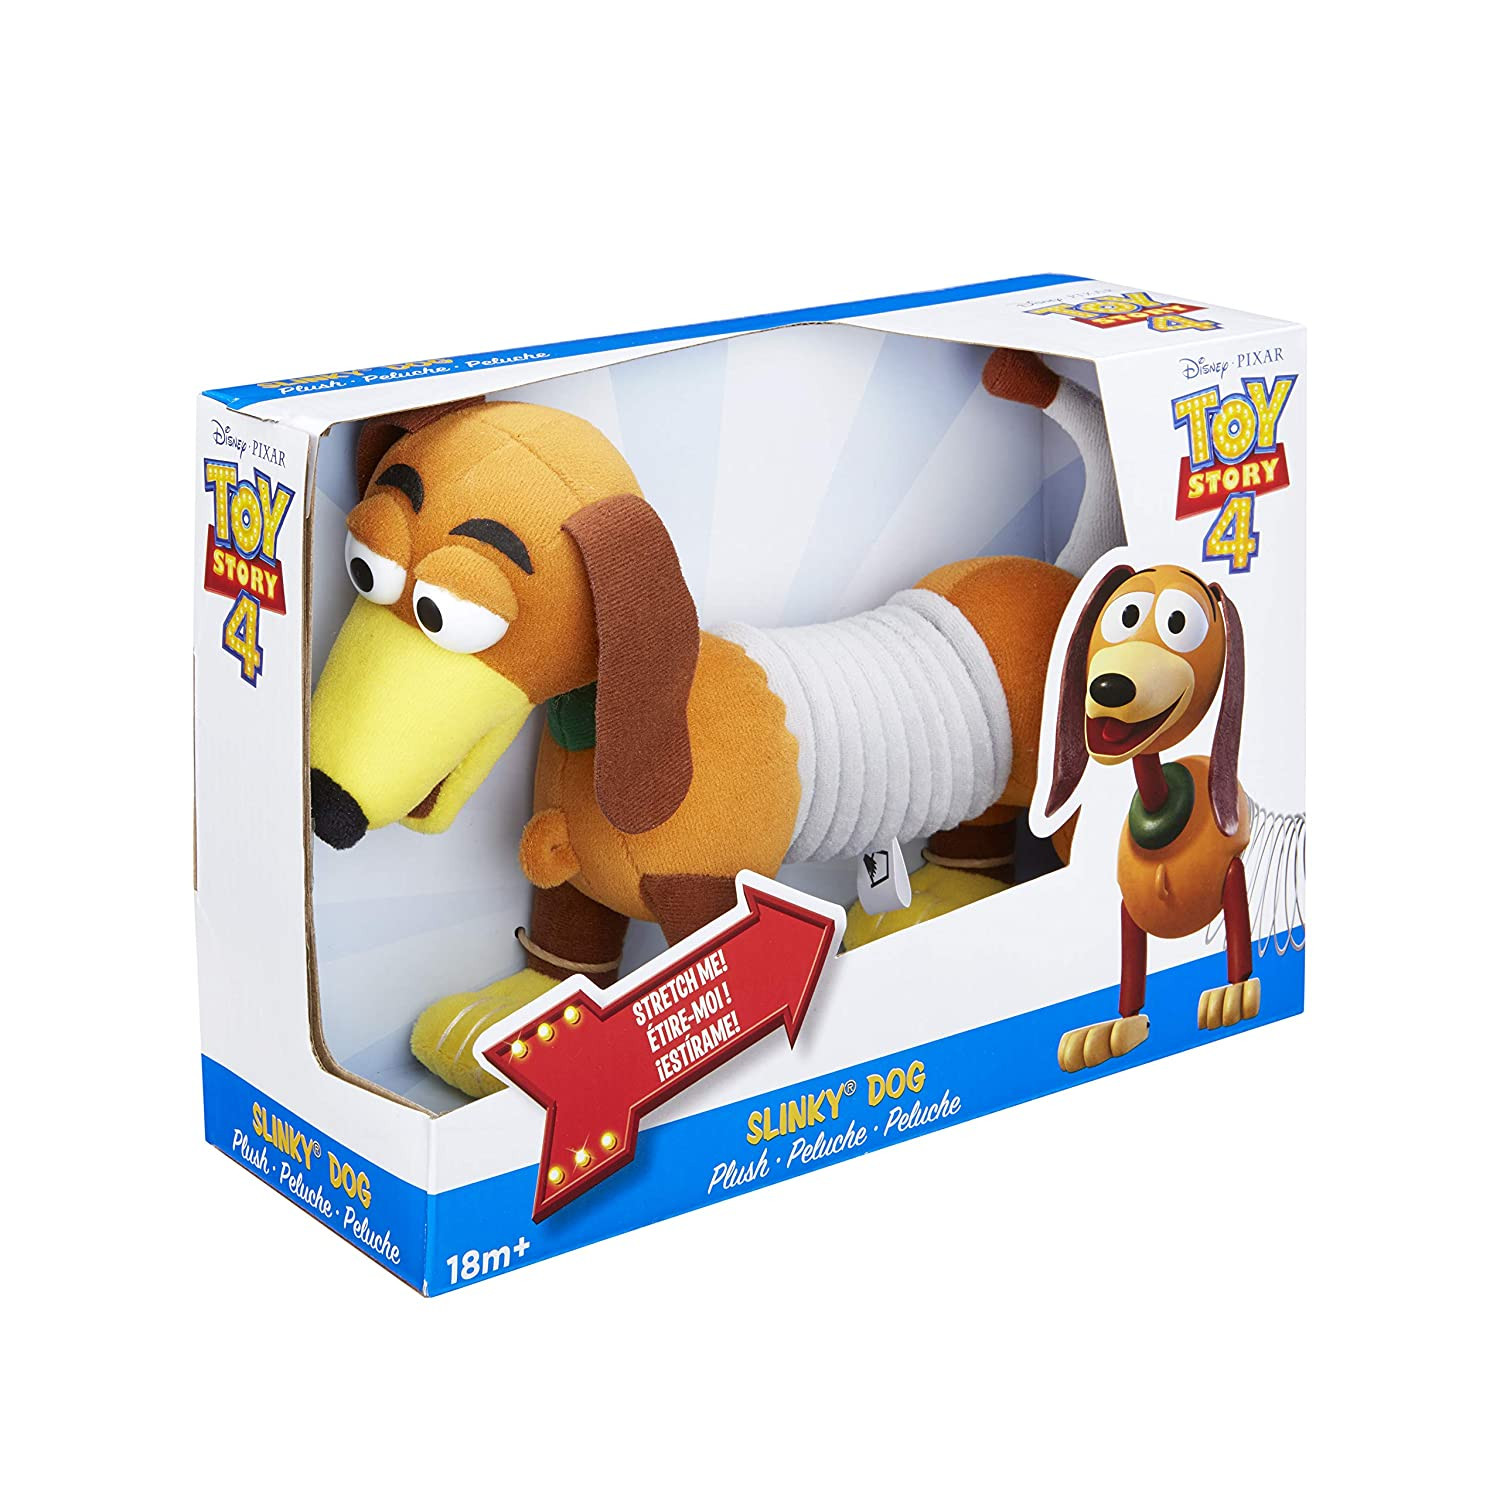 Slinky Disney Pixar Toy Story 4 Plush Dog